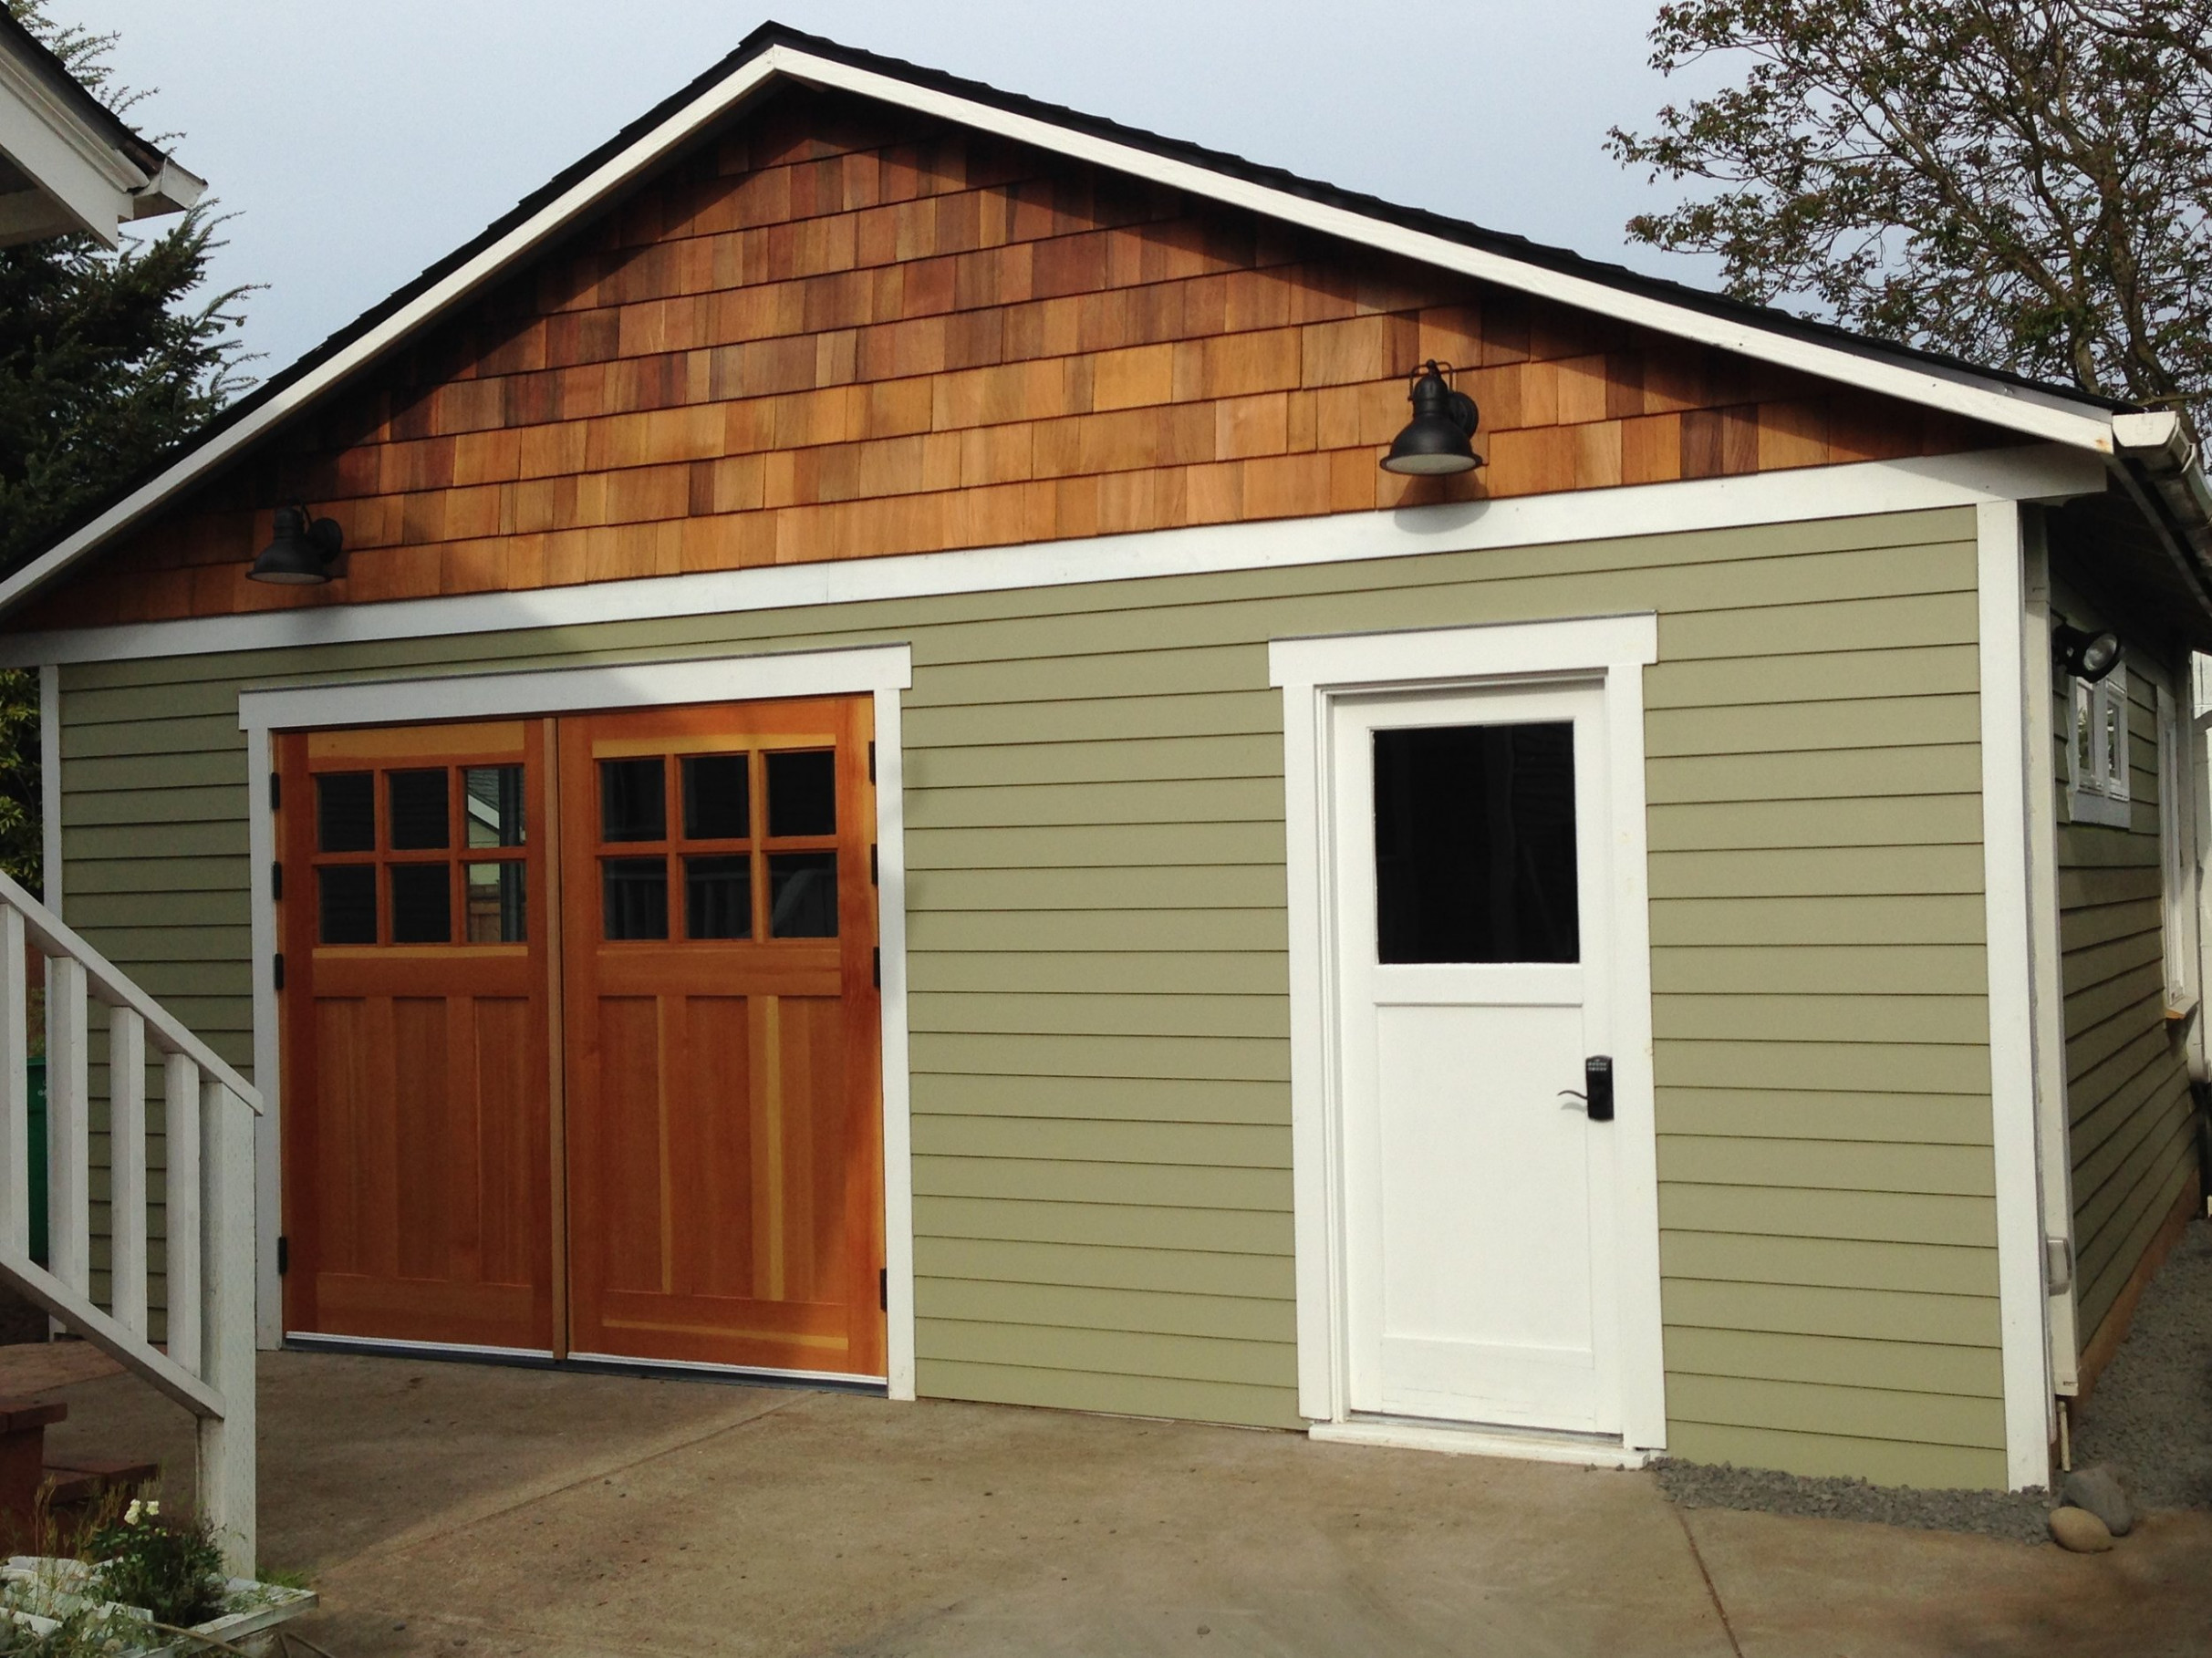 How To Save Money With A Garage Conversion ADU — Building An ADU Carport Extension Ideas